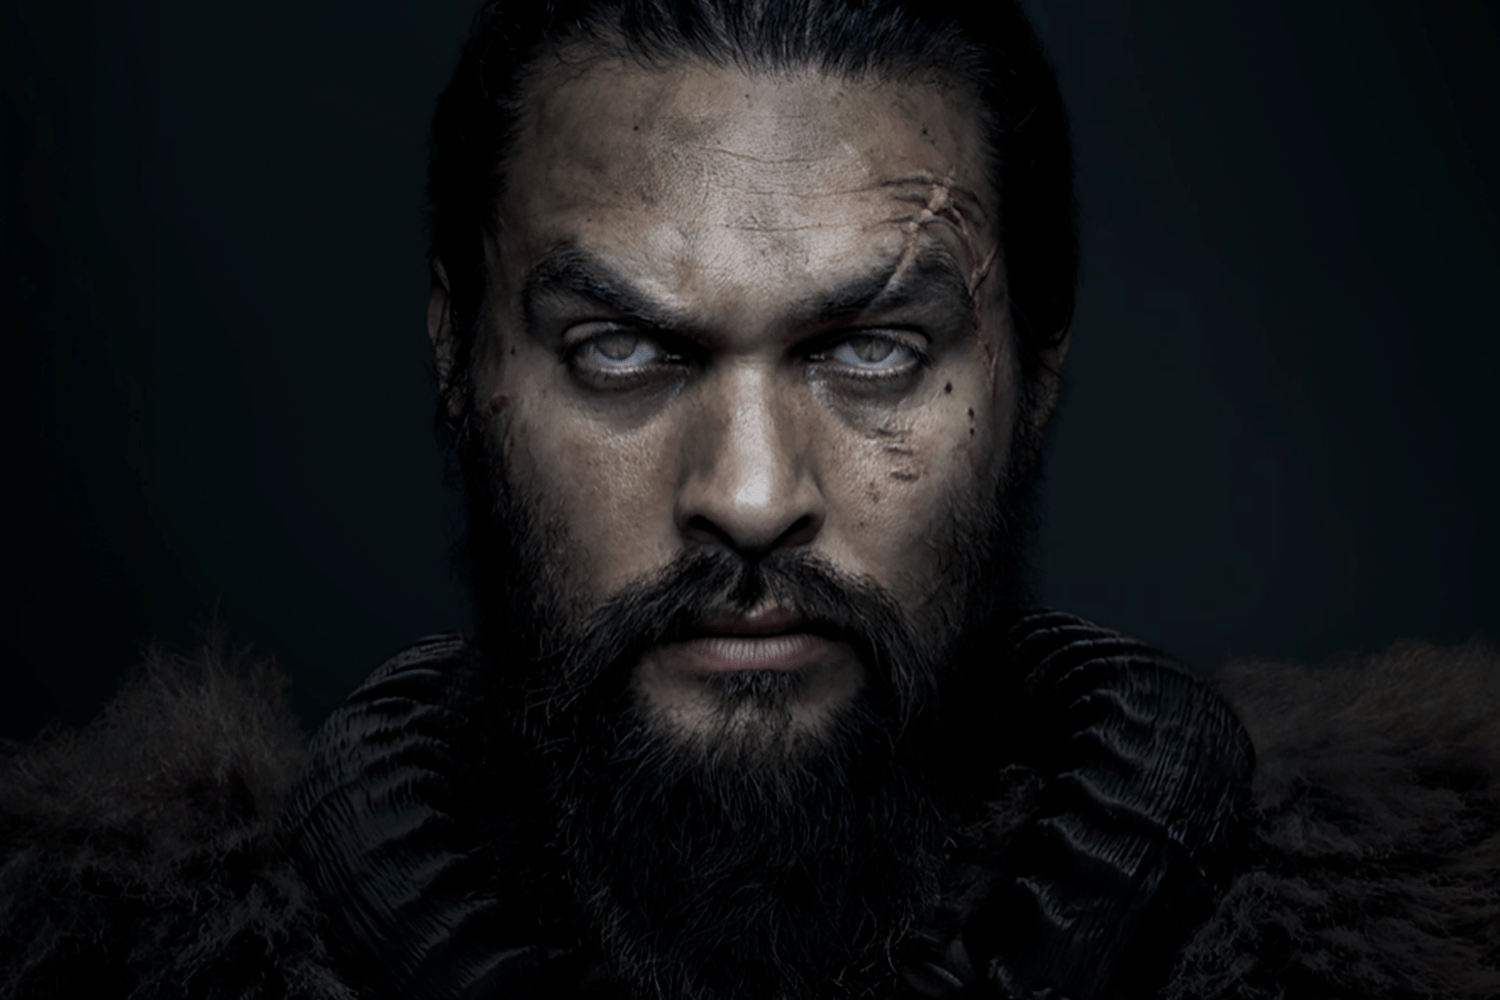 Jason Momoa's See was one of the earliest Apple TV+ originals